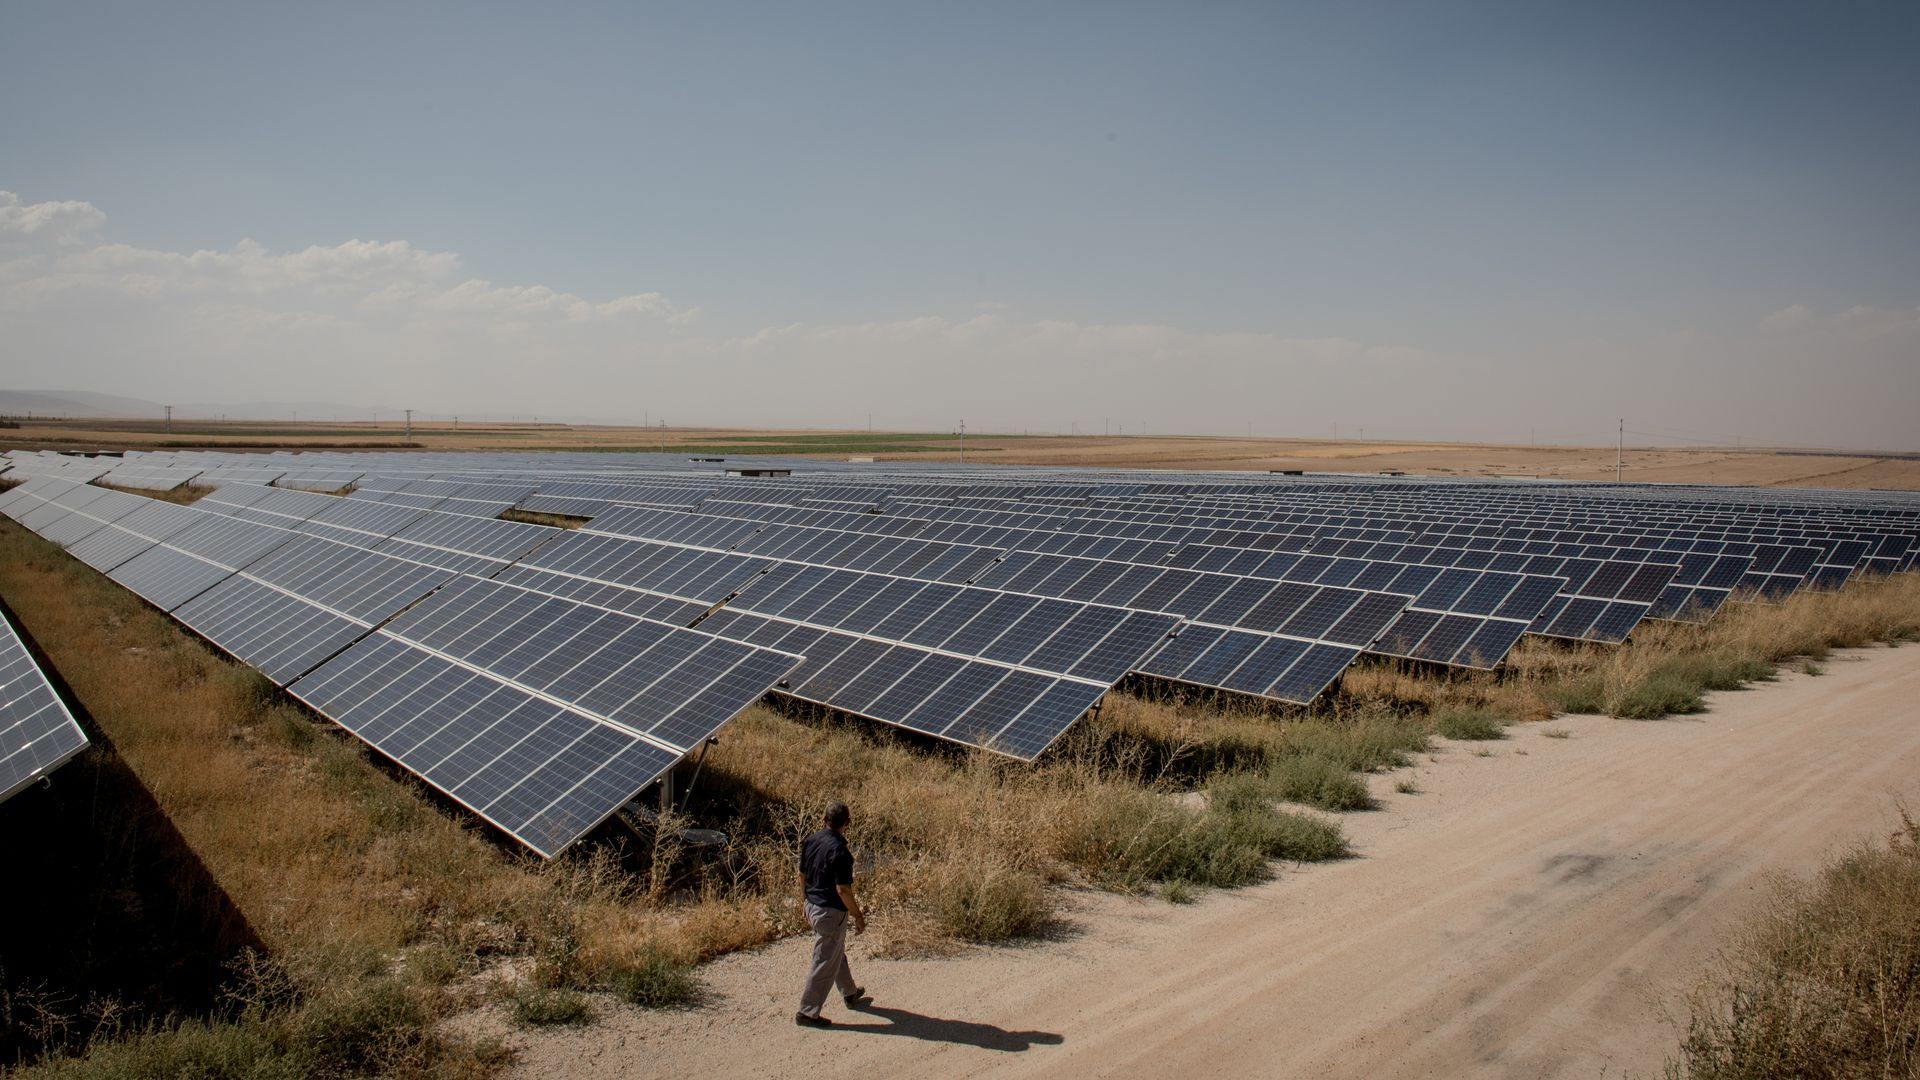 A person walks by solar panels in a field.